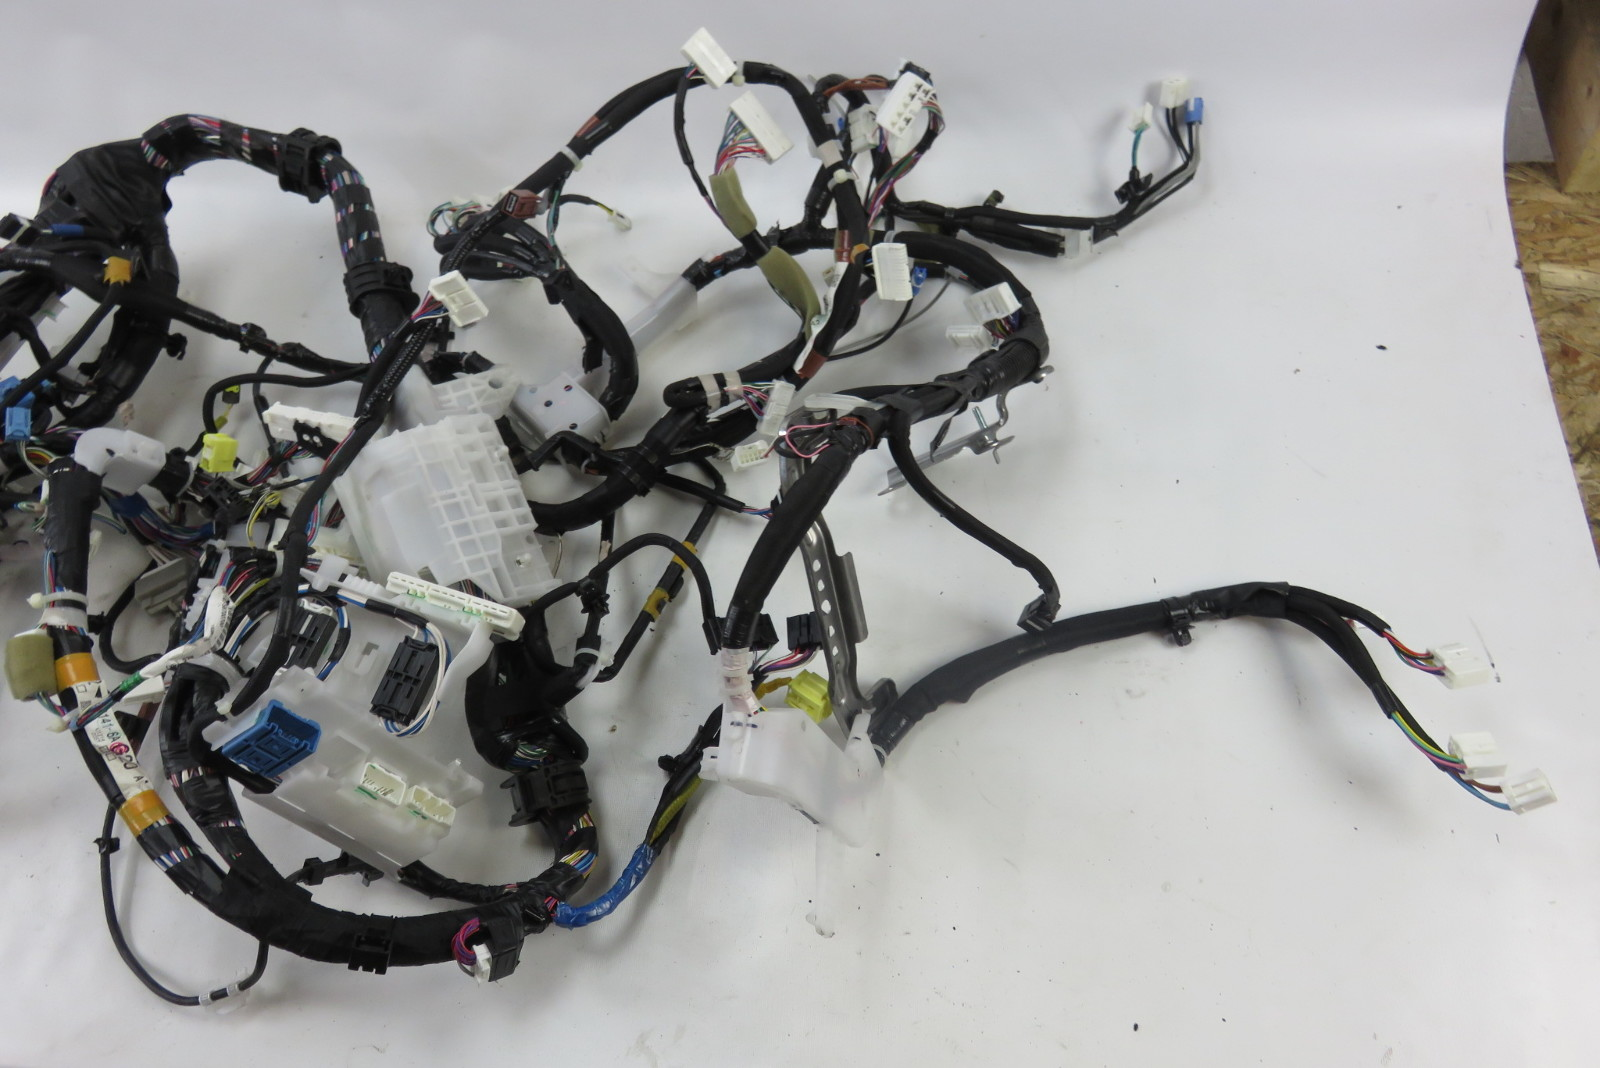 12 Lexus Gx460 Wiring Harness Instrument Panel Front 82141 6ag20 821416ag20